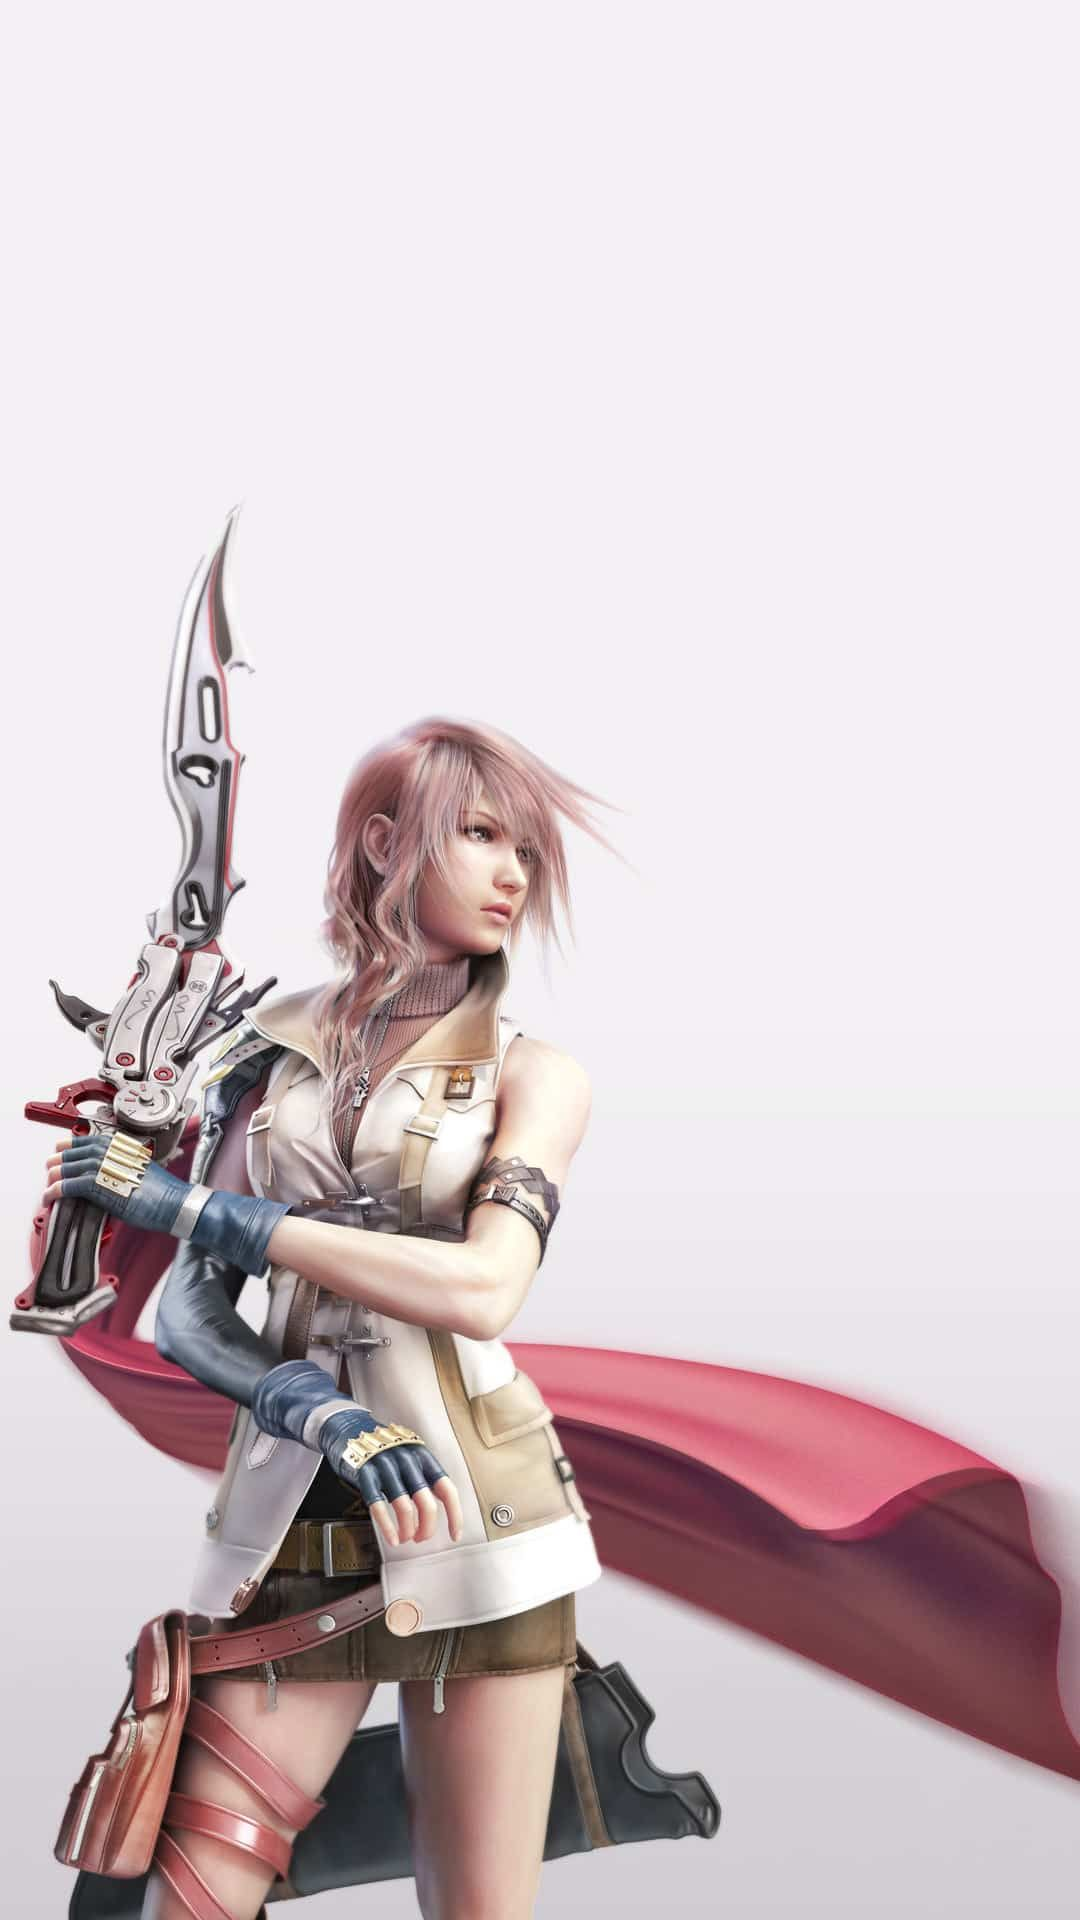 http://wallpaperformobile/14220/final-fantasy-xiii-wallpaper